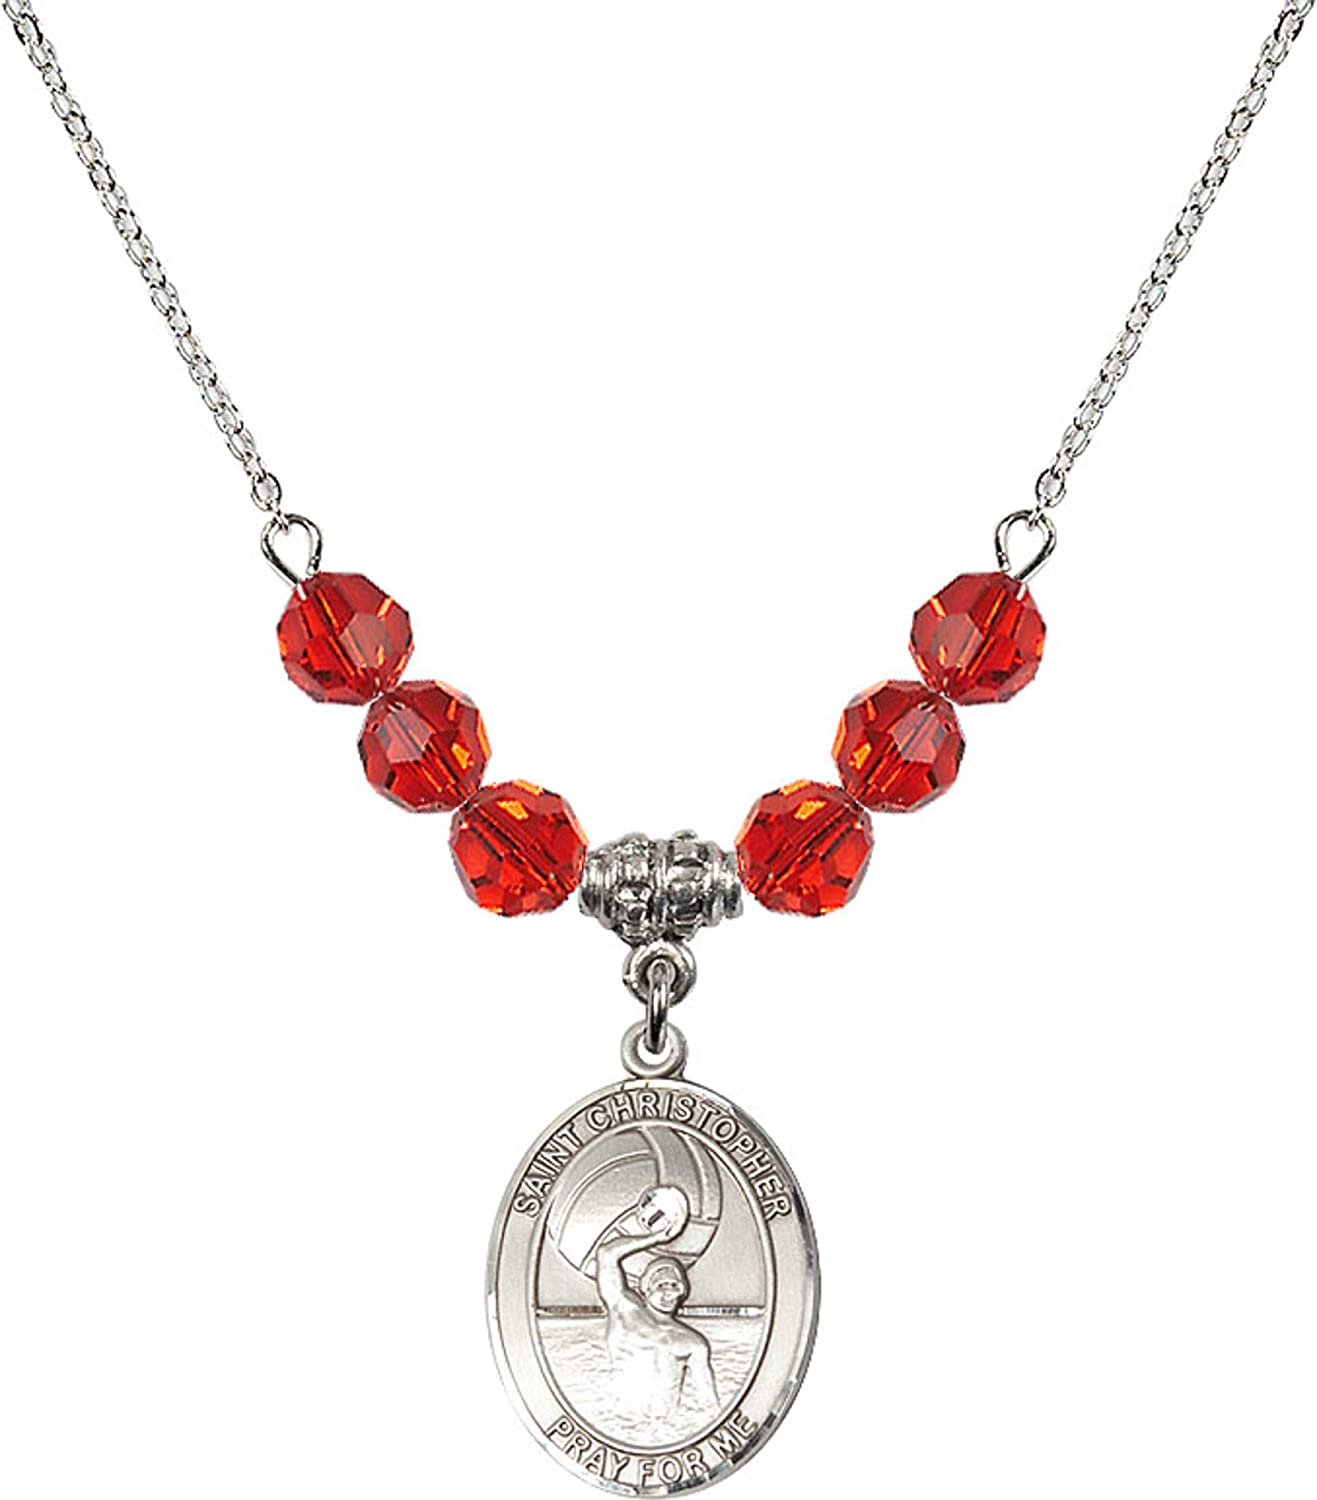 Bonyak Jewelry 18 Inch Rhodium Plated Necklace w// 6mm Red July Birth Month Stone Beads and Saint Christopher//Water Polo-Men Charm